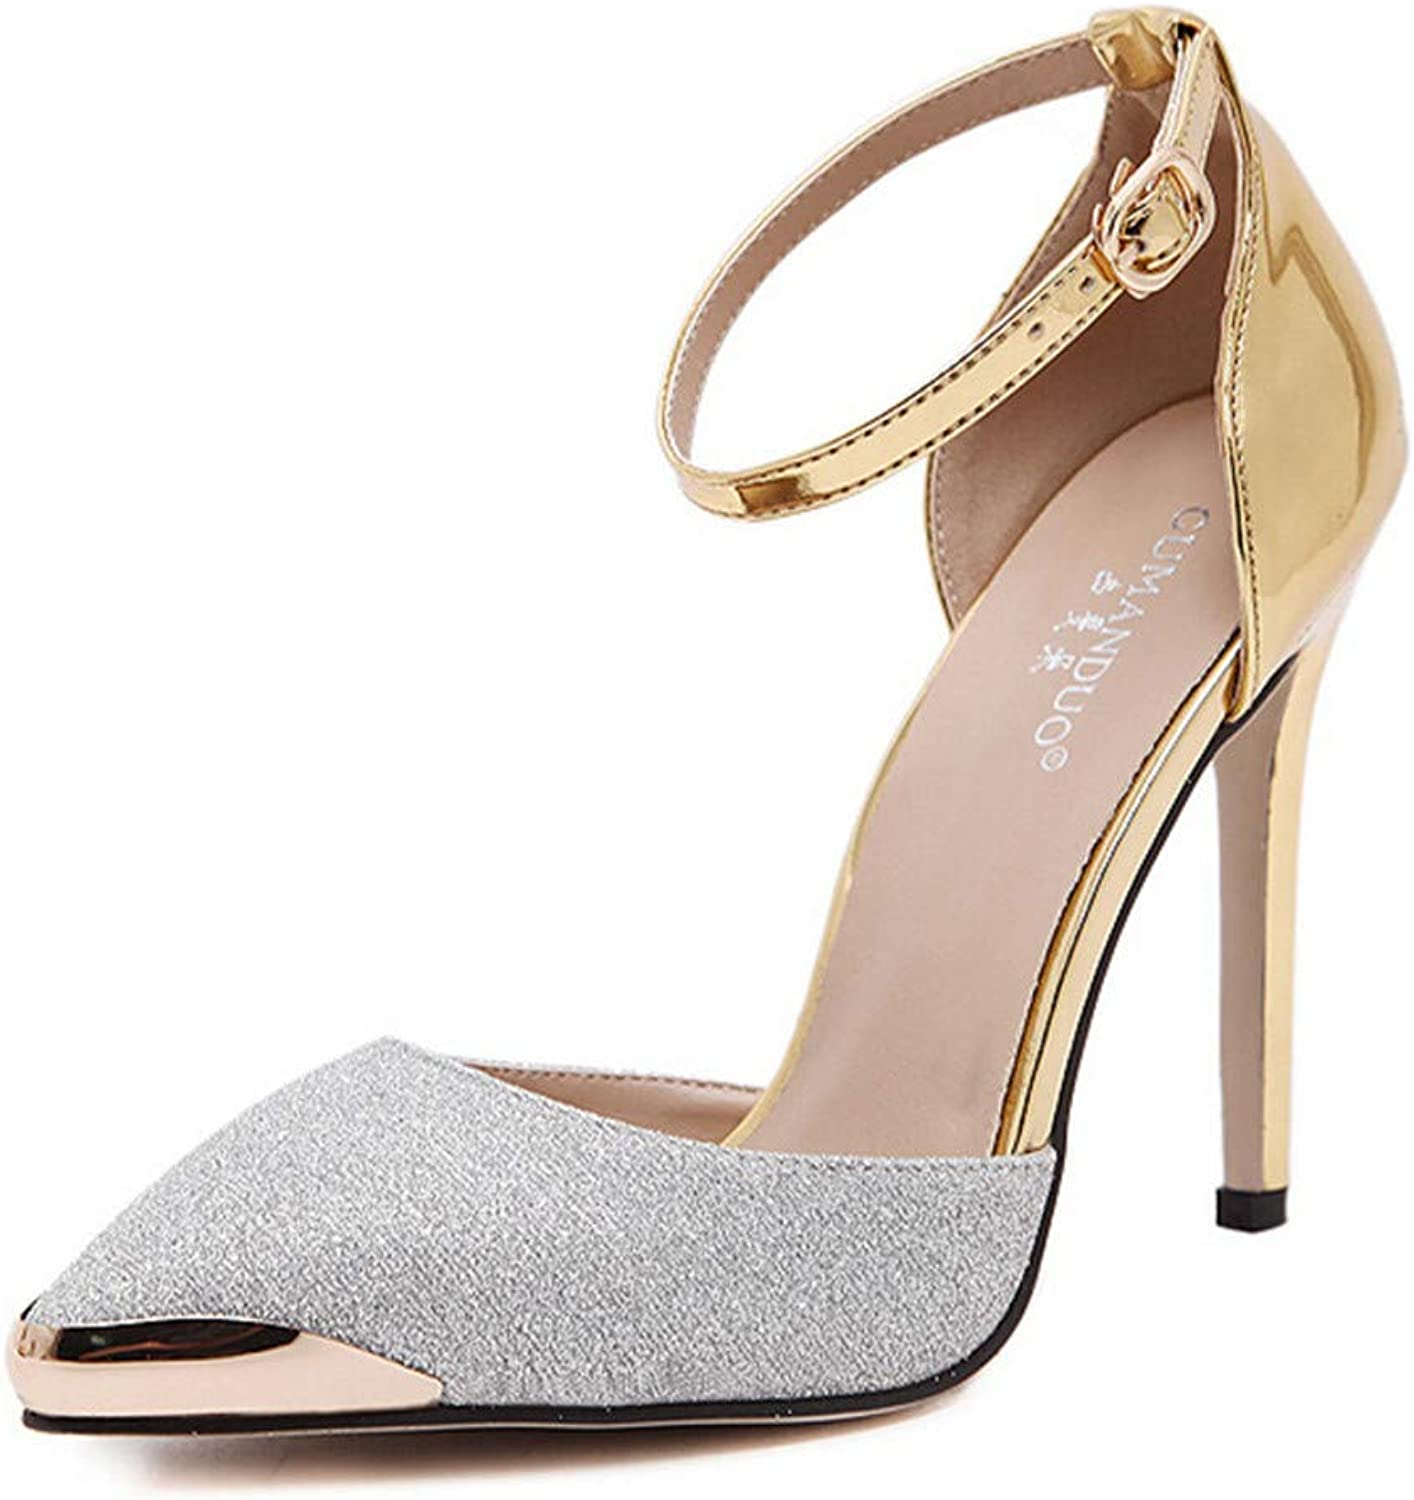 Women's Casual shoes, Single shoes, Stiletto shoes, Pointed shoes, Spring and Summer, Fashion Sexy Button shoes